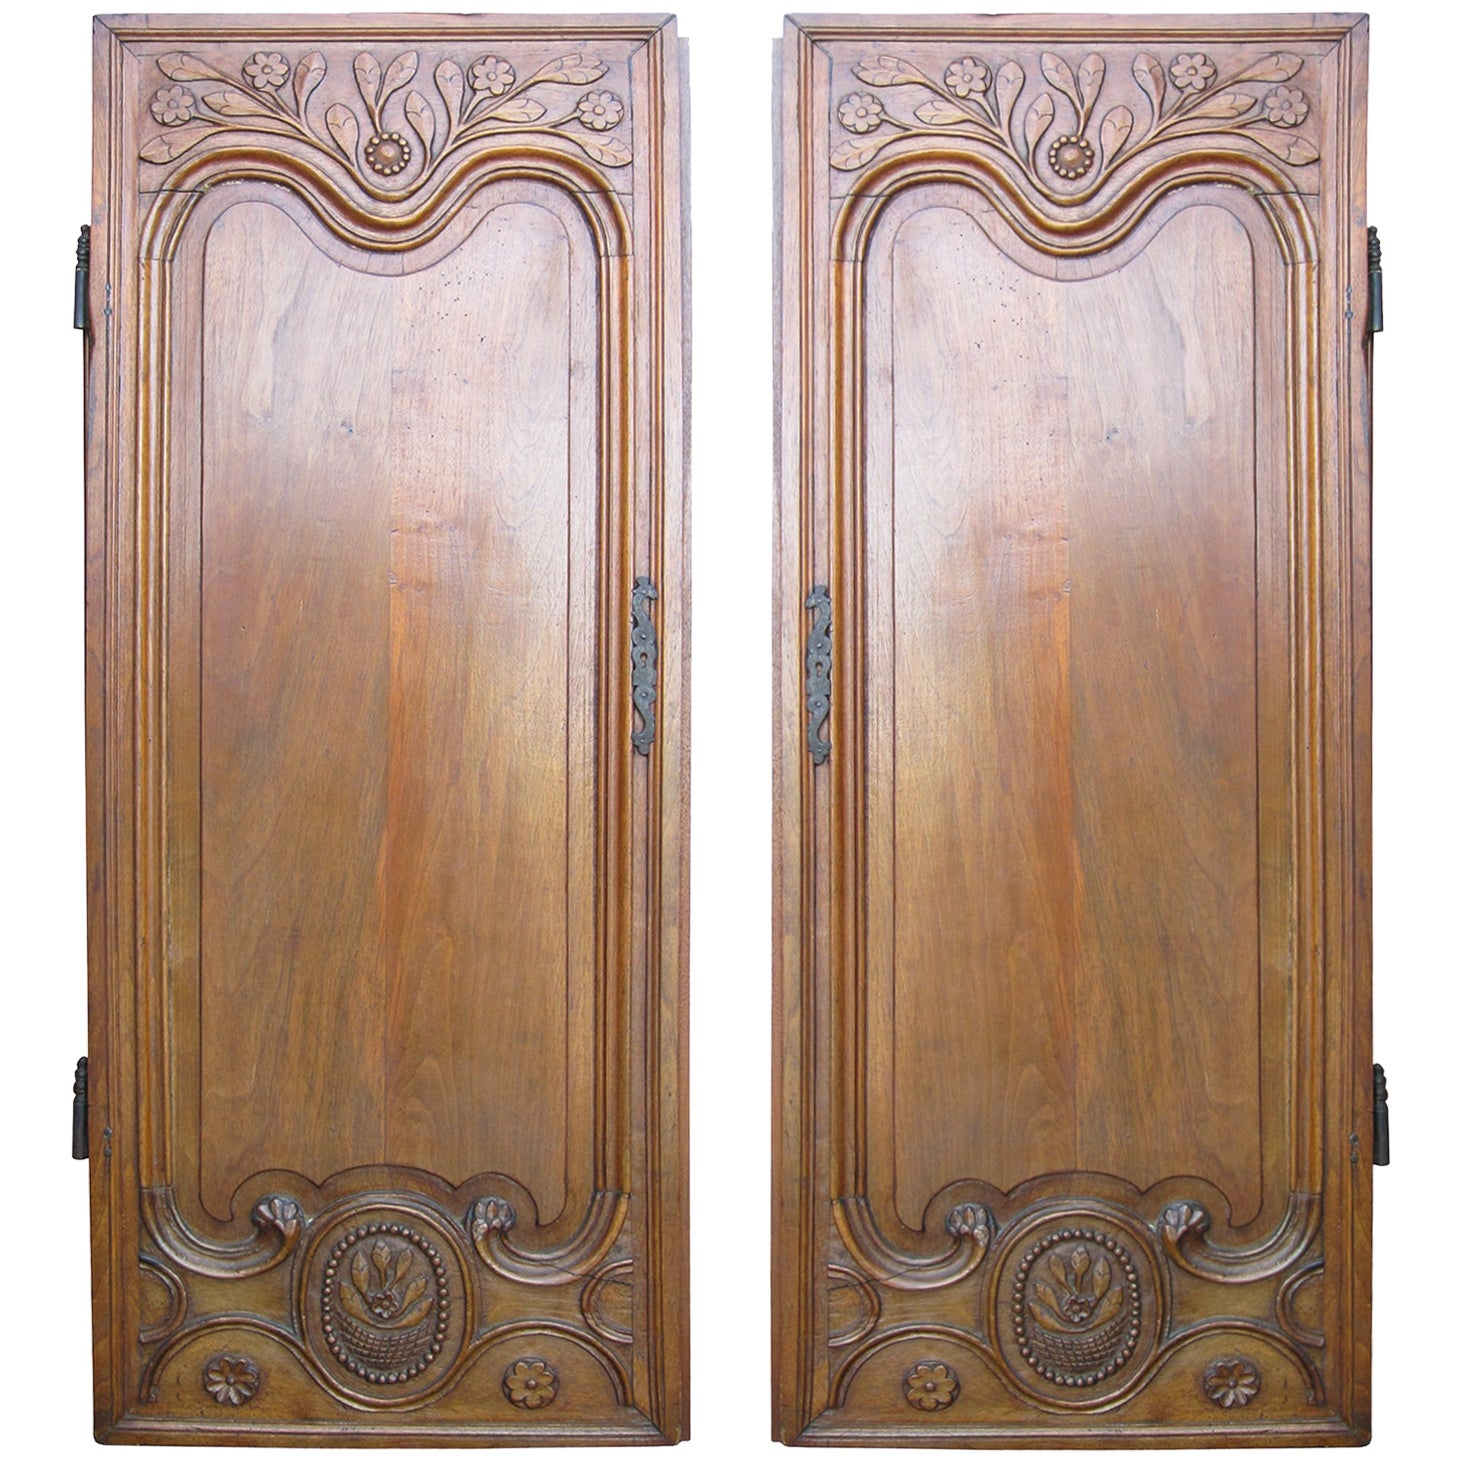 Pair of 18th-19th Century French Carved Doors